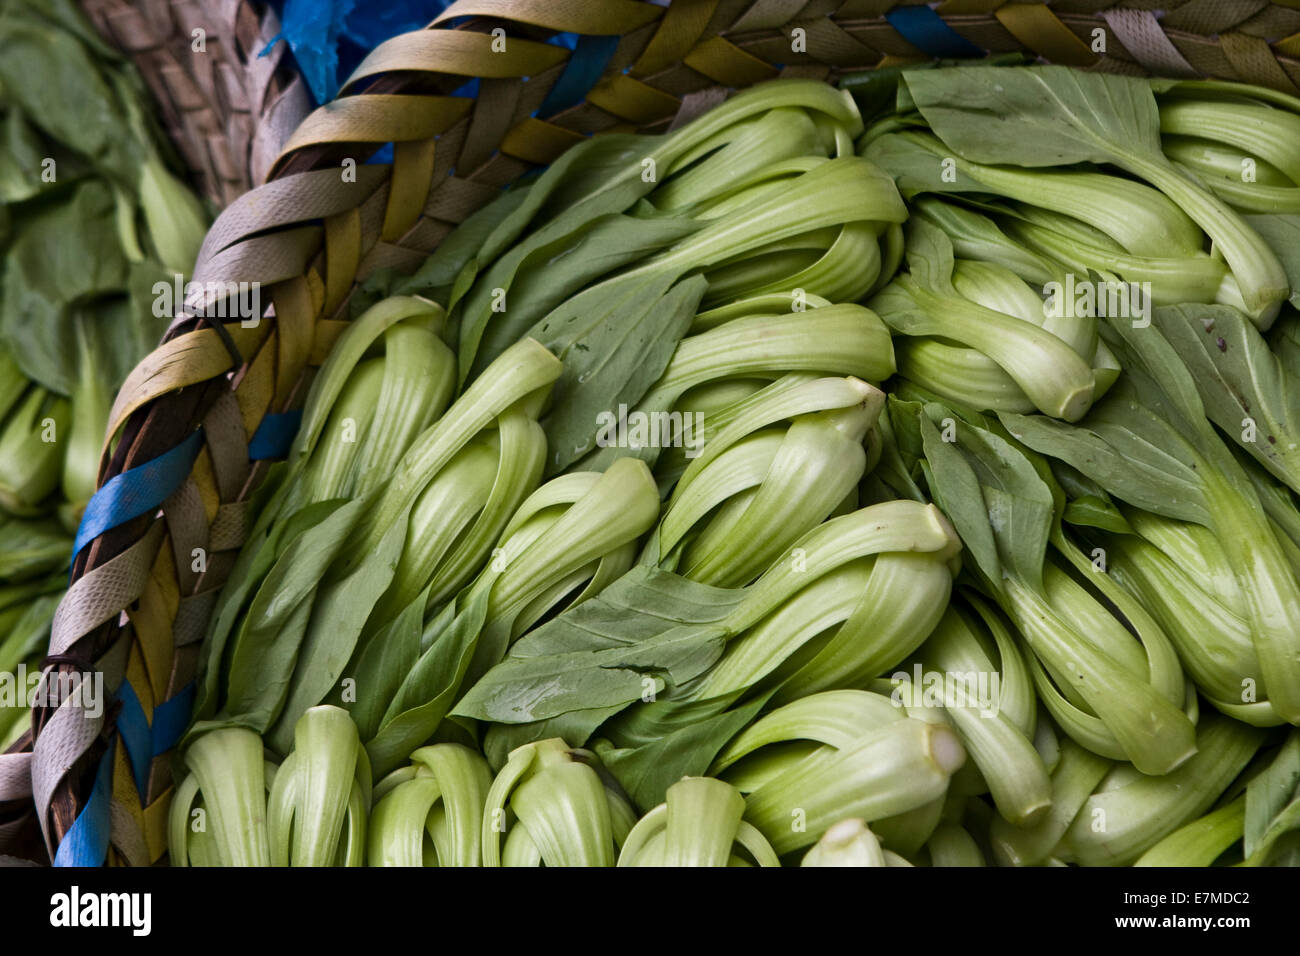 Bok Choy chinese vegetable - Stock Image